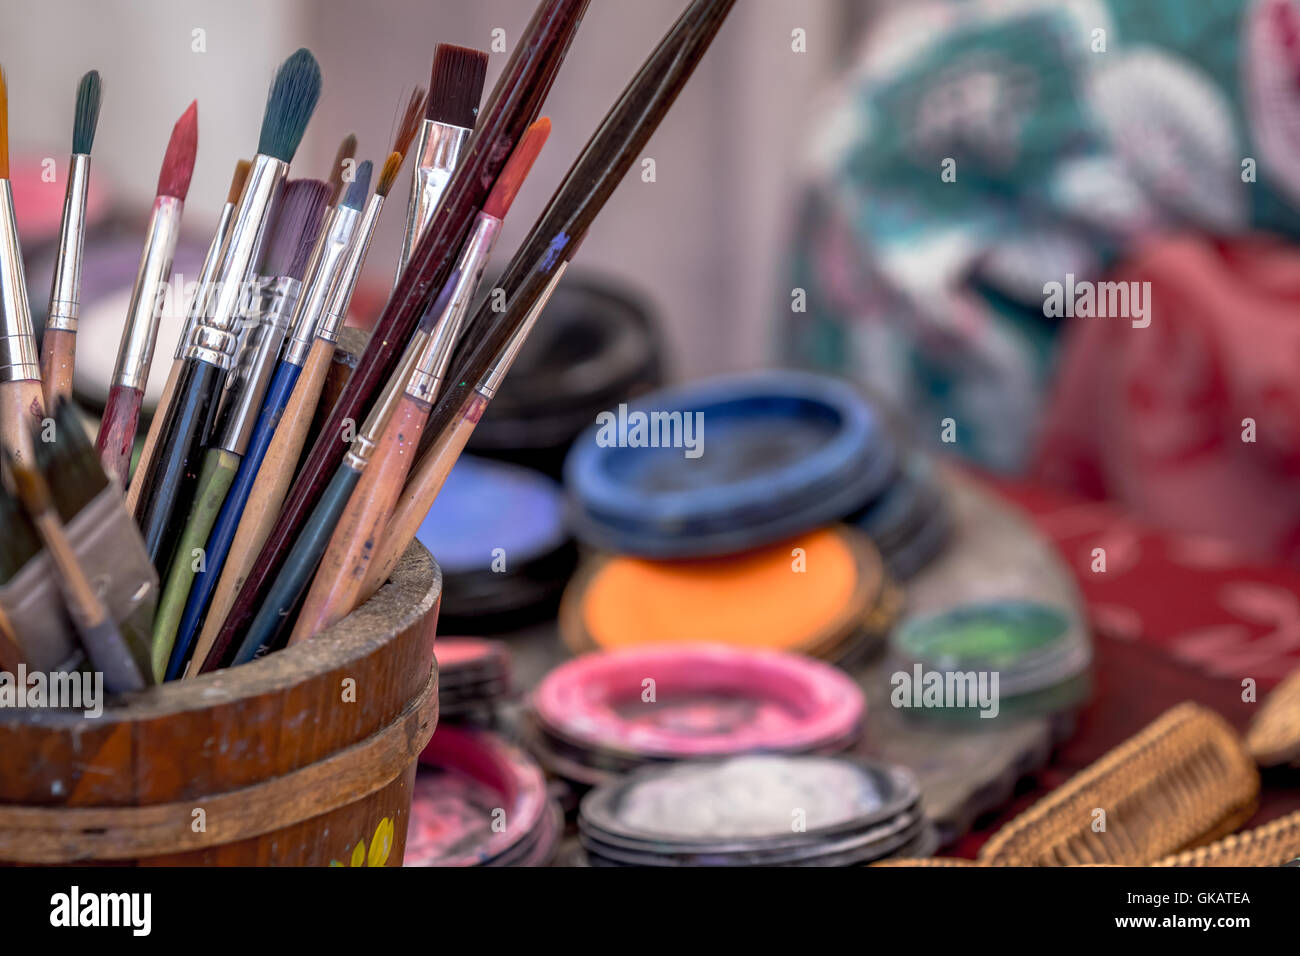 colored paint brushes on a desk - Stock Image